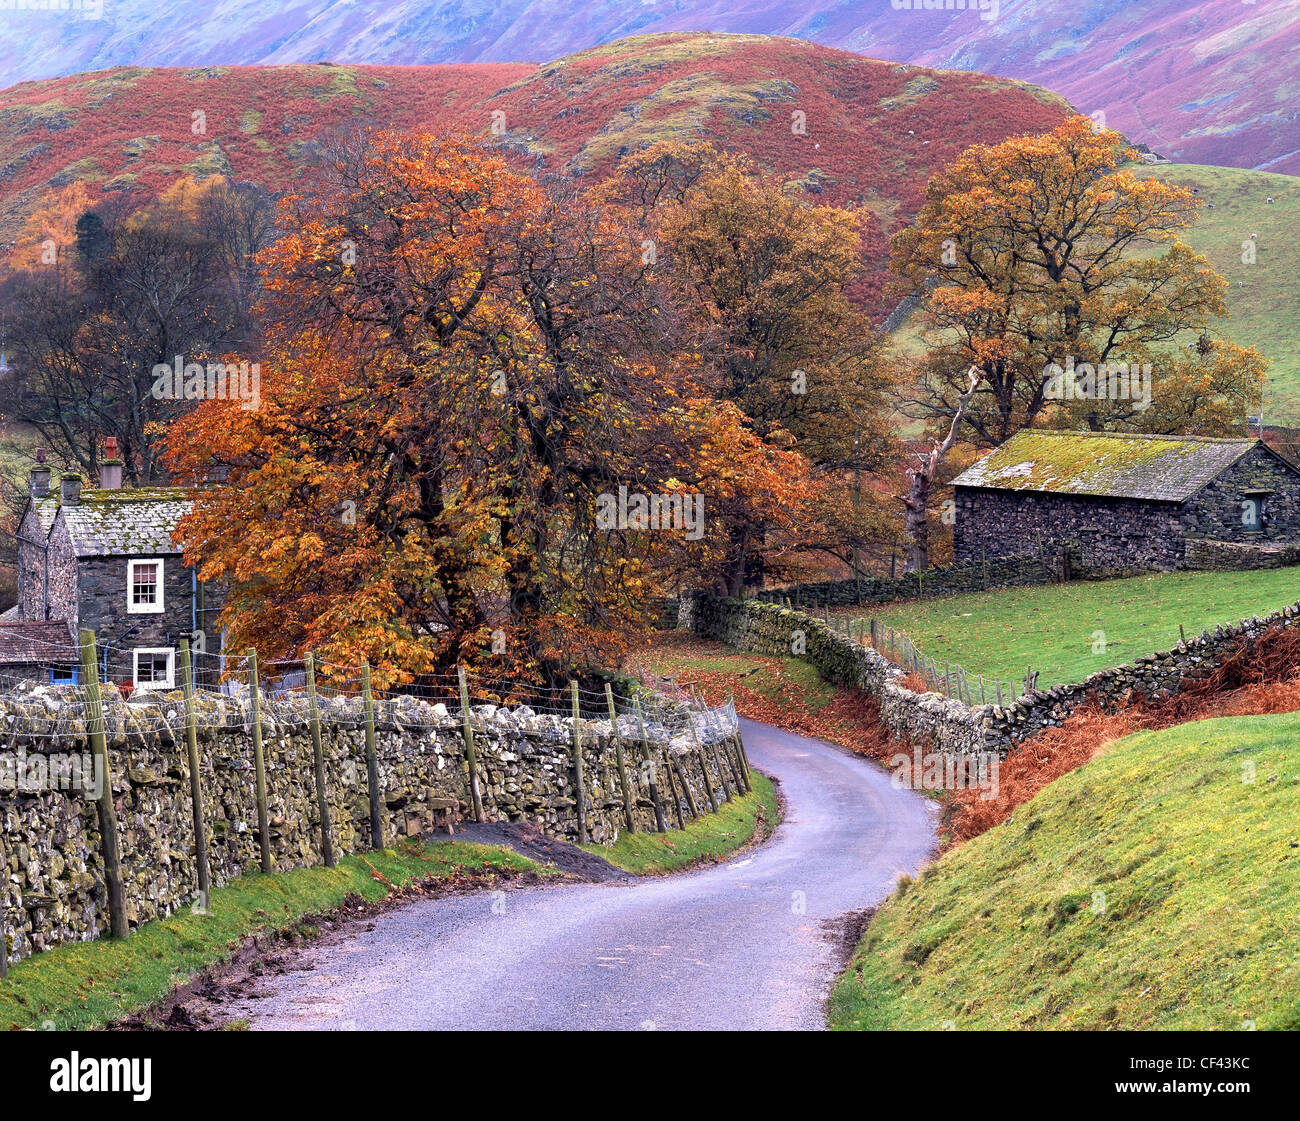 View along a winding country lane towards the remote Cumbrian village of Martindale in the Lake District. - Stock Image